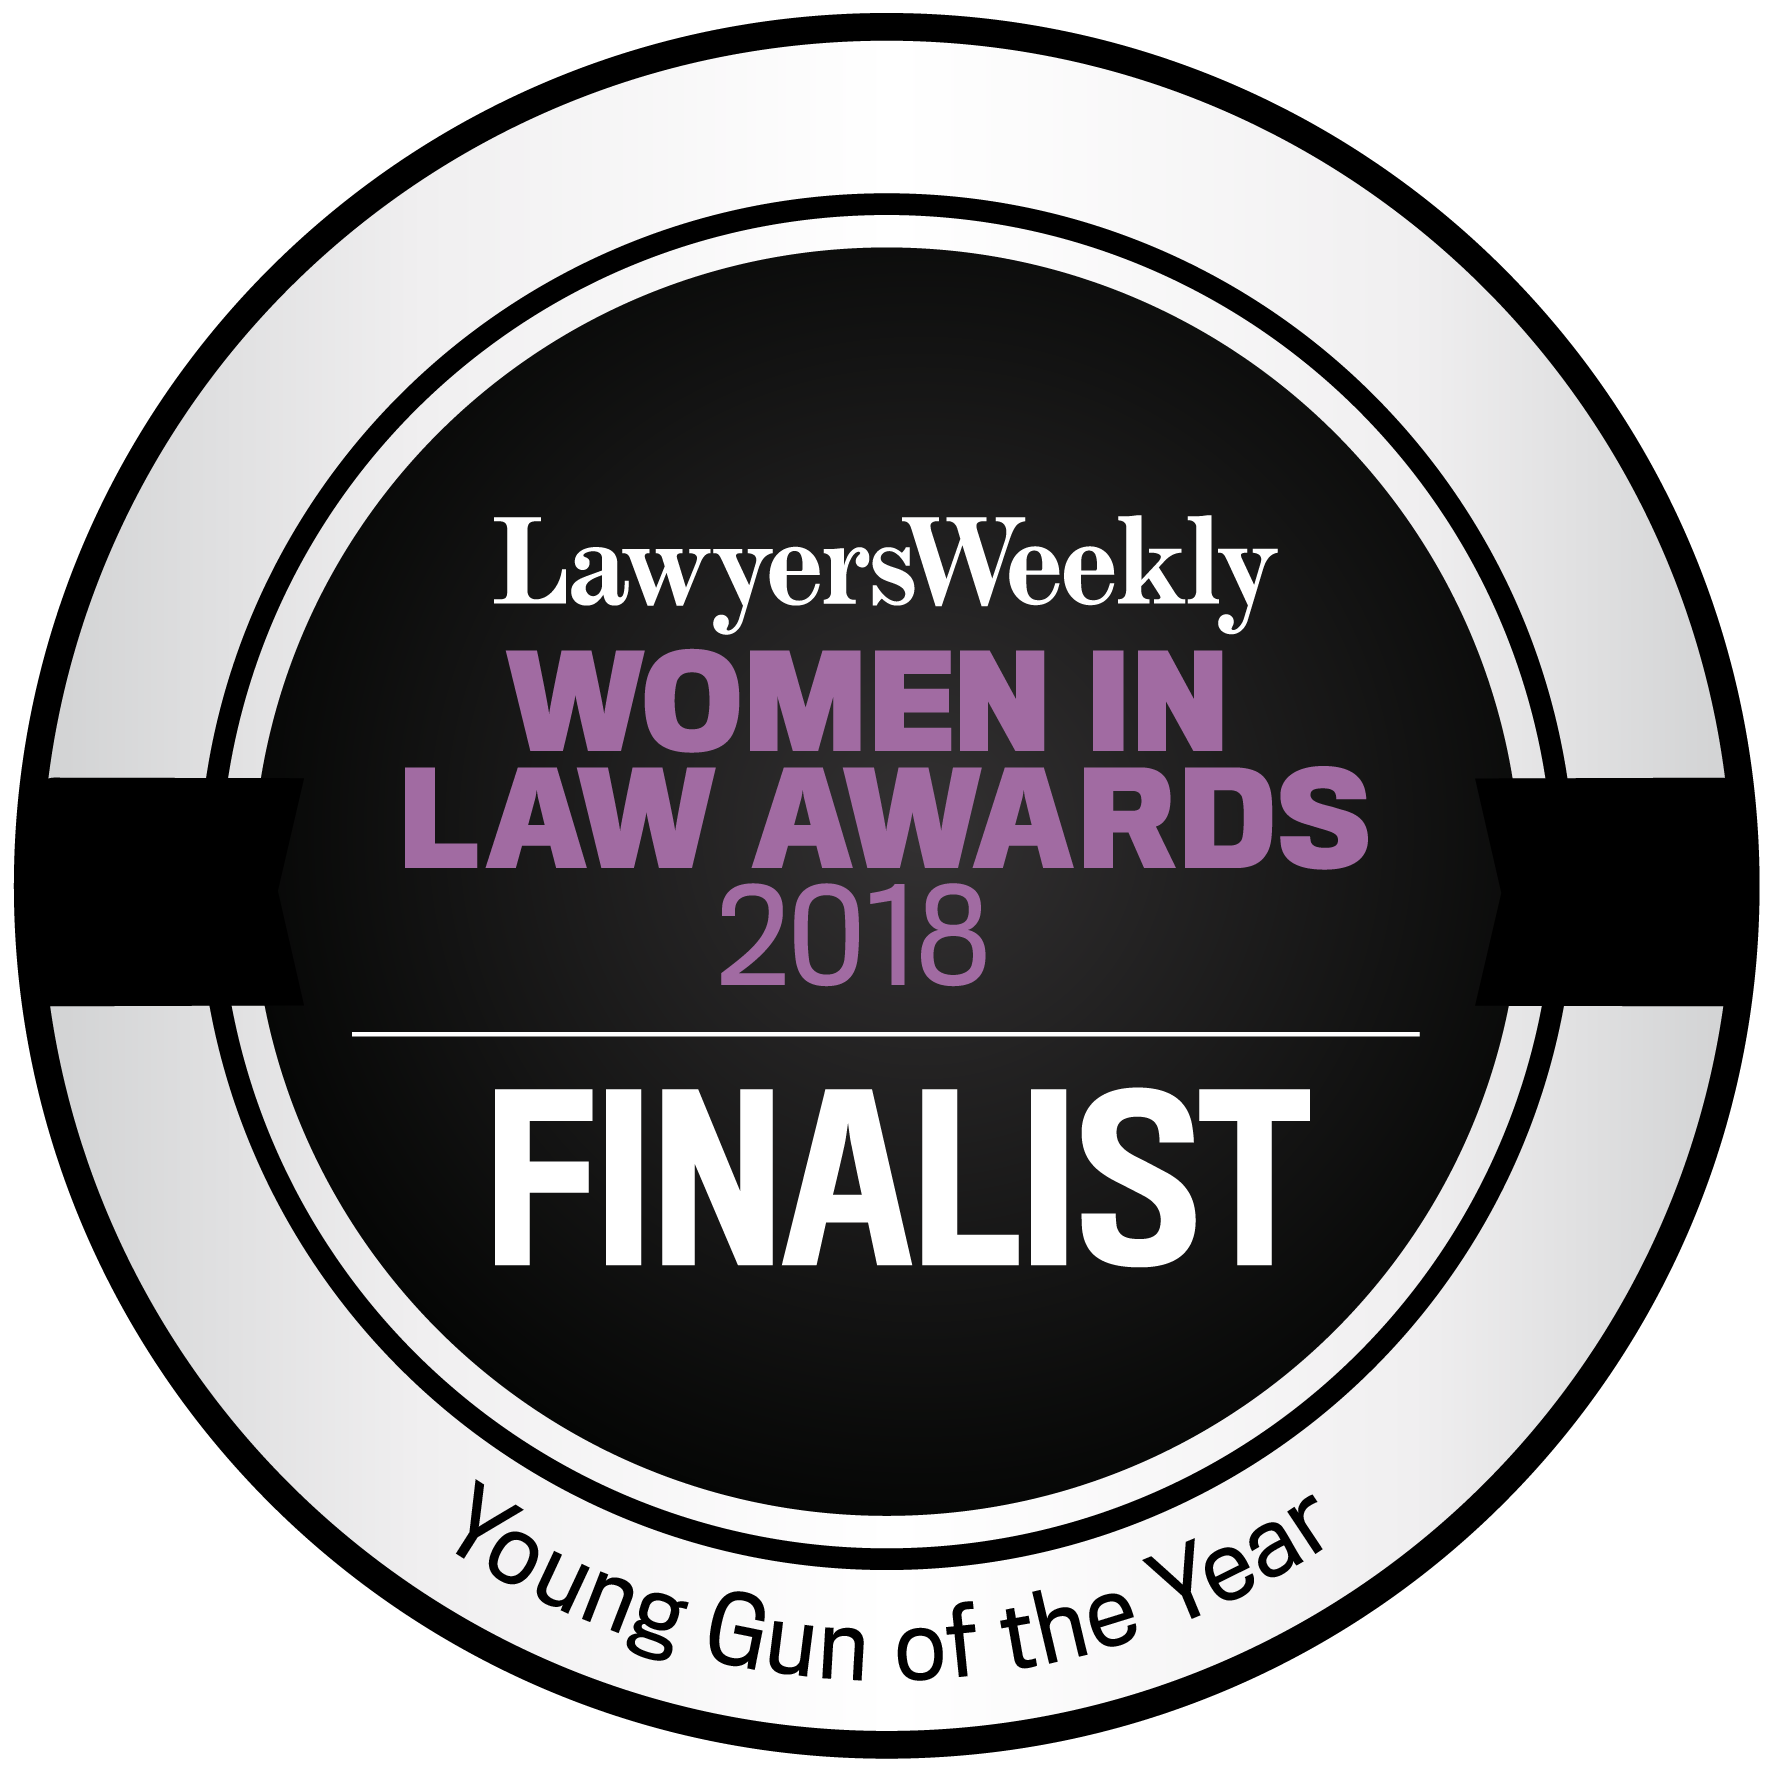 Lawyers Weekly Women in Law Awards 2018 - Young Gun of the Year